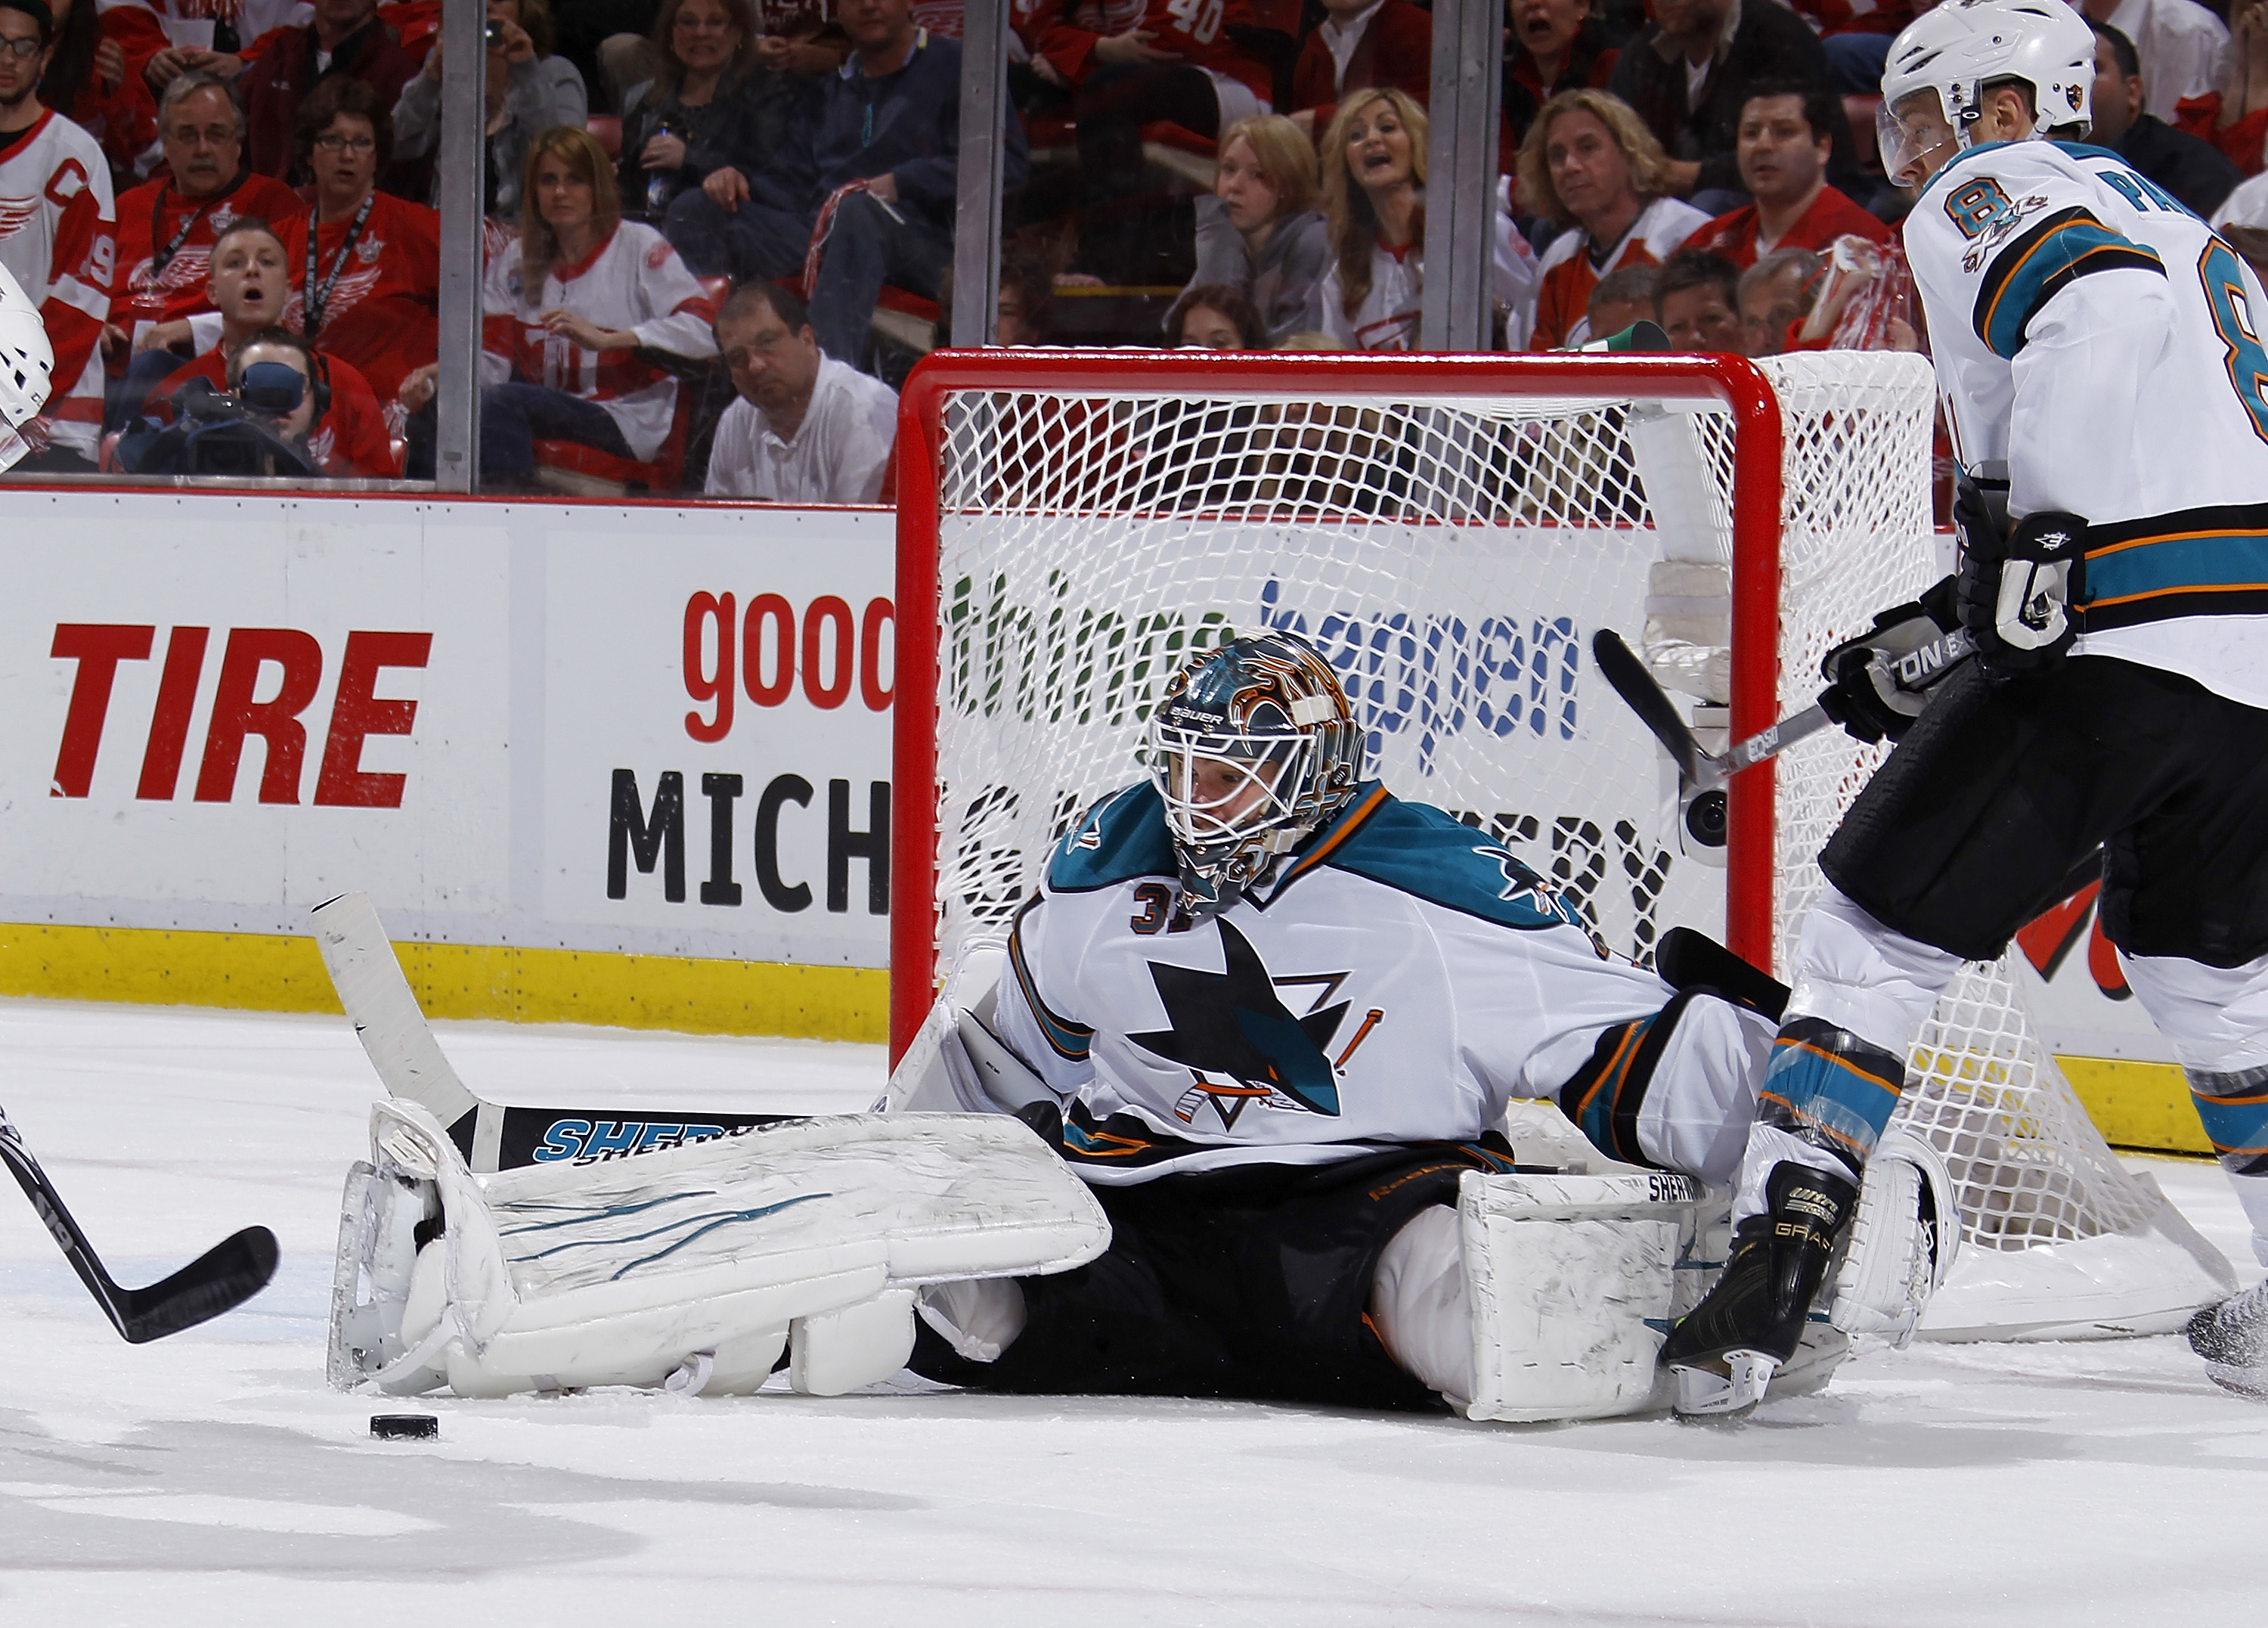 DETROIT - MAY 10: Antti Niemi #31 of the San Jose Sharks watches the rebound in the second period after saving a goal shot by the Detroit Red Wings in Game Six of the Western Conference Semifinals during the 2011 NHL Stanley Cup Playoffs on May 10, 2011 a